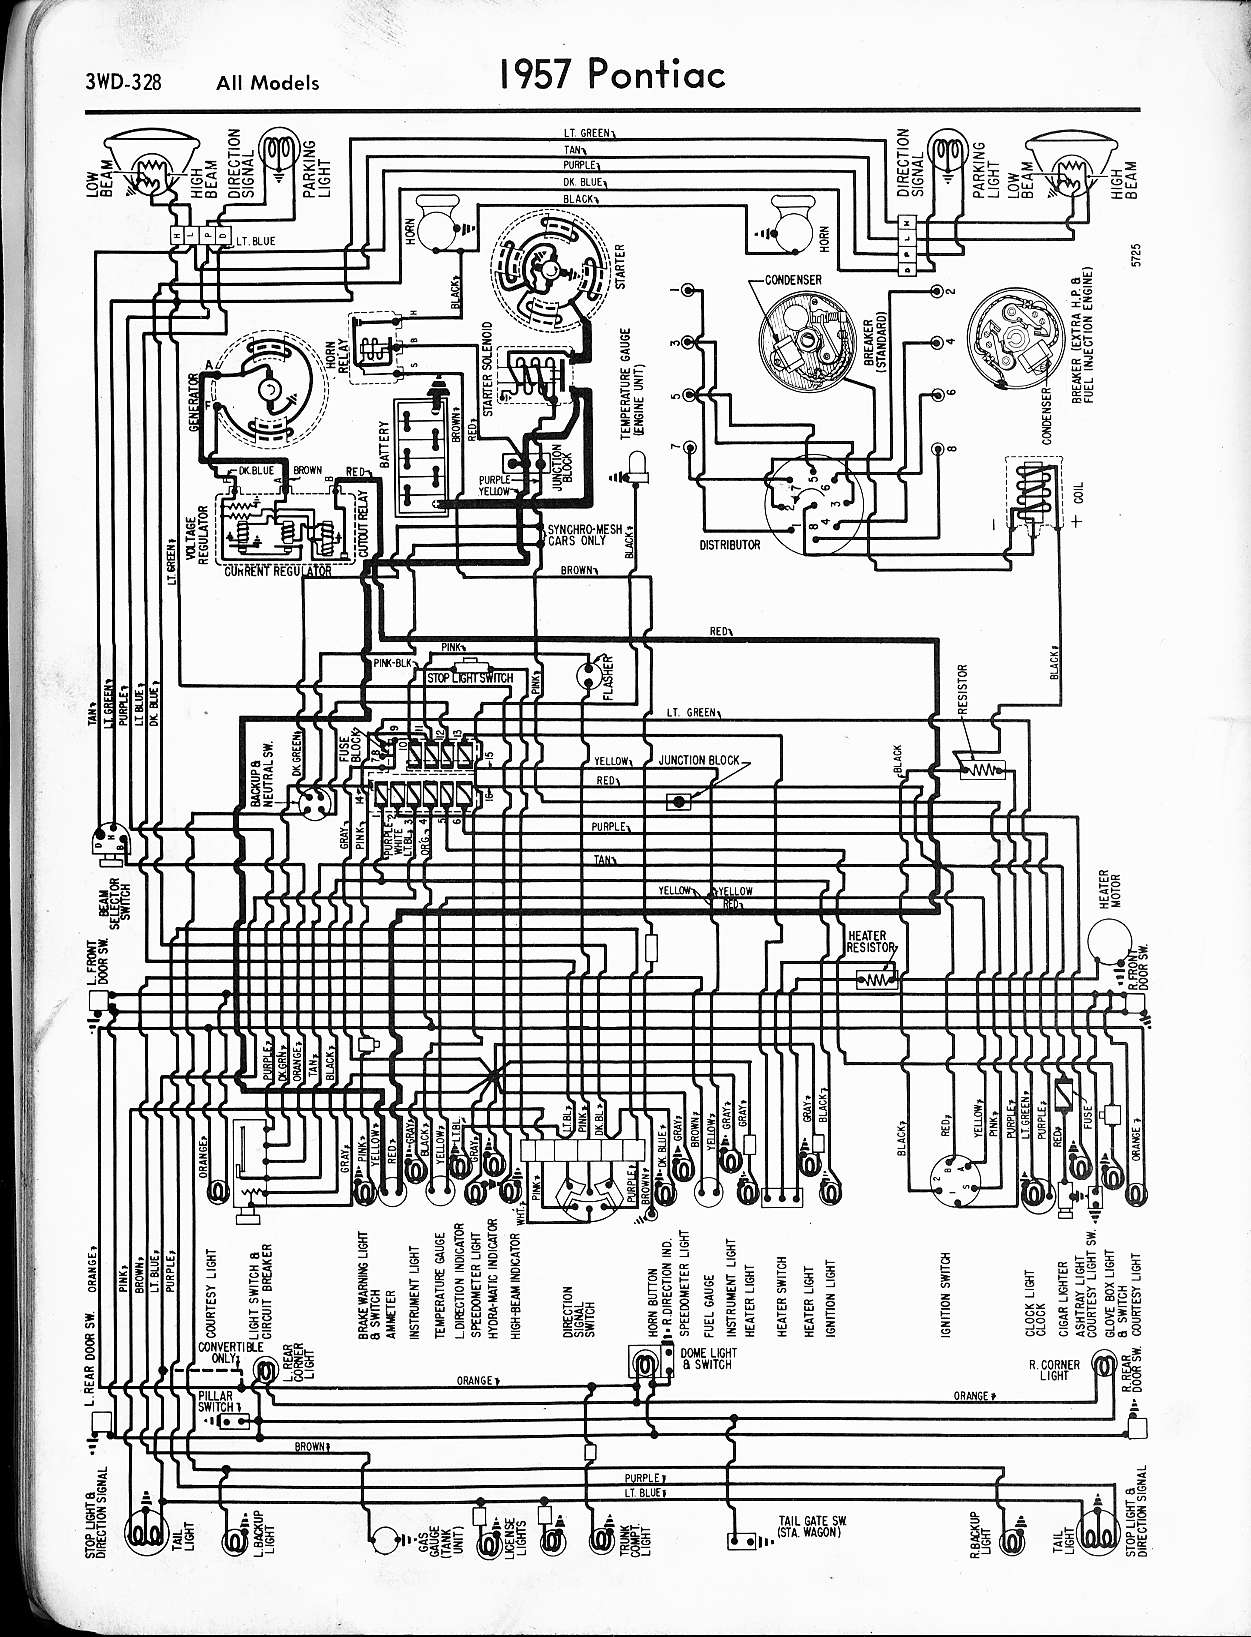 65 lincoln wiring bzerob com technical articles library wiring section  bzerob com technical articles library